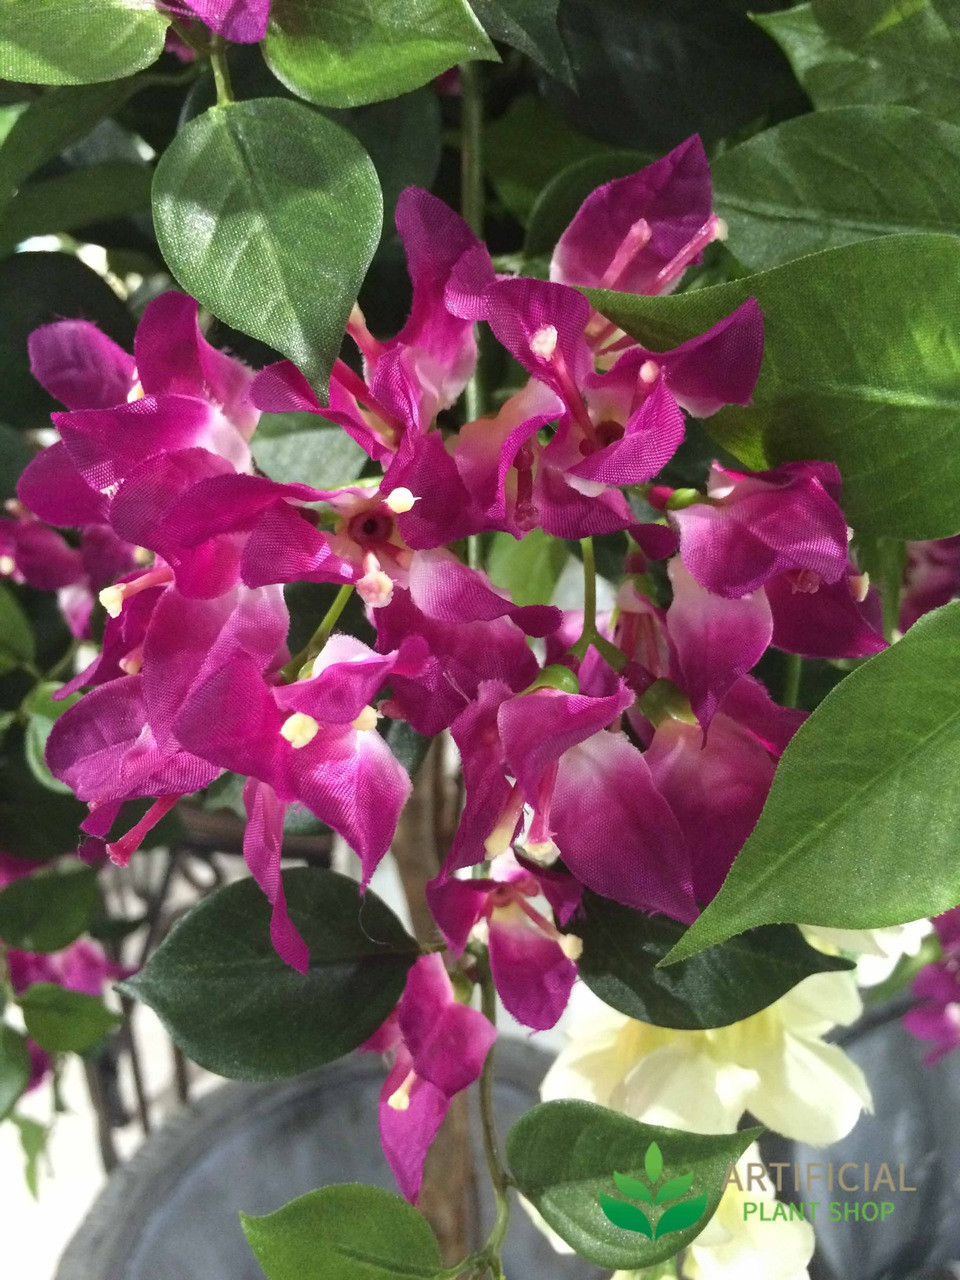 Artificial Bougainvillea flowers